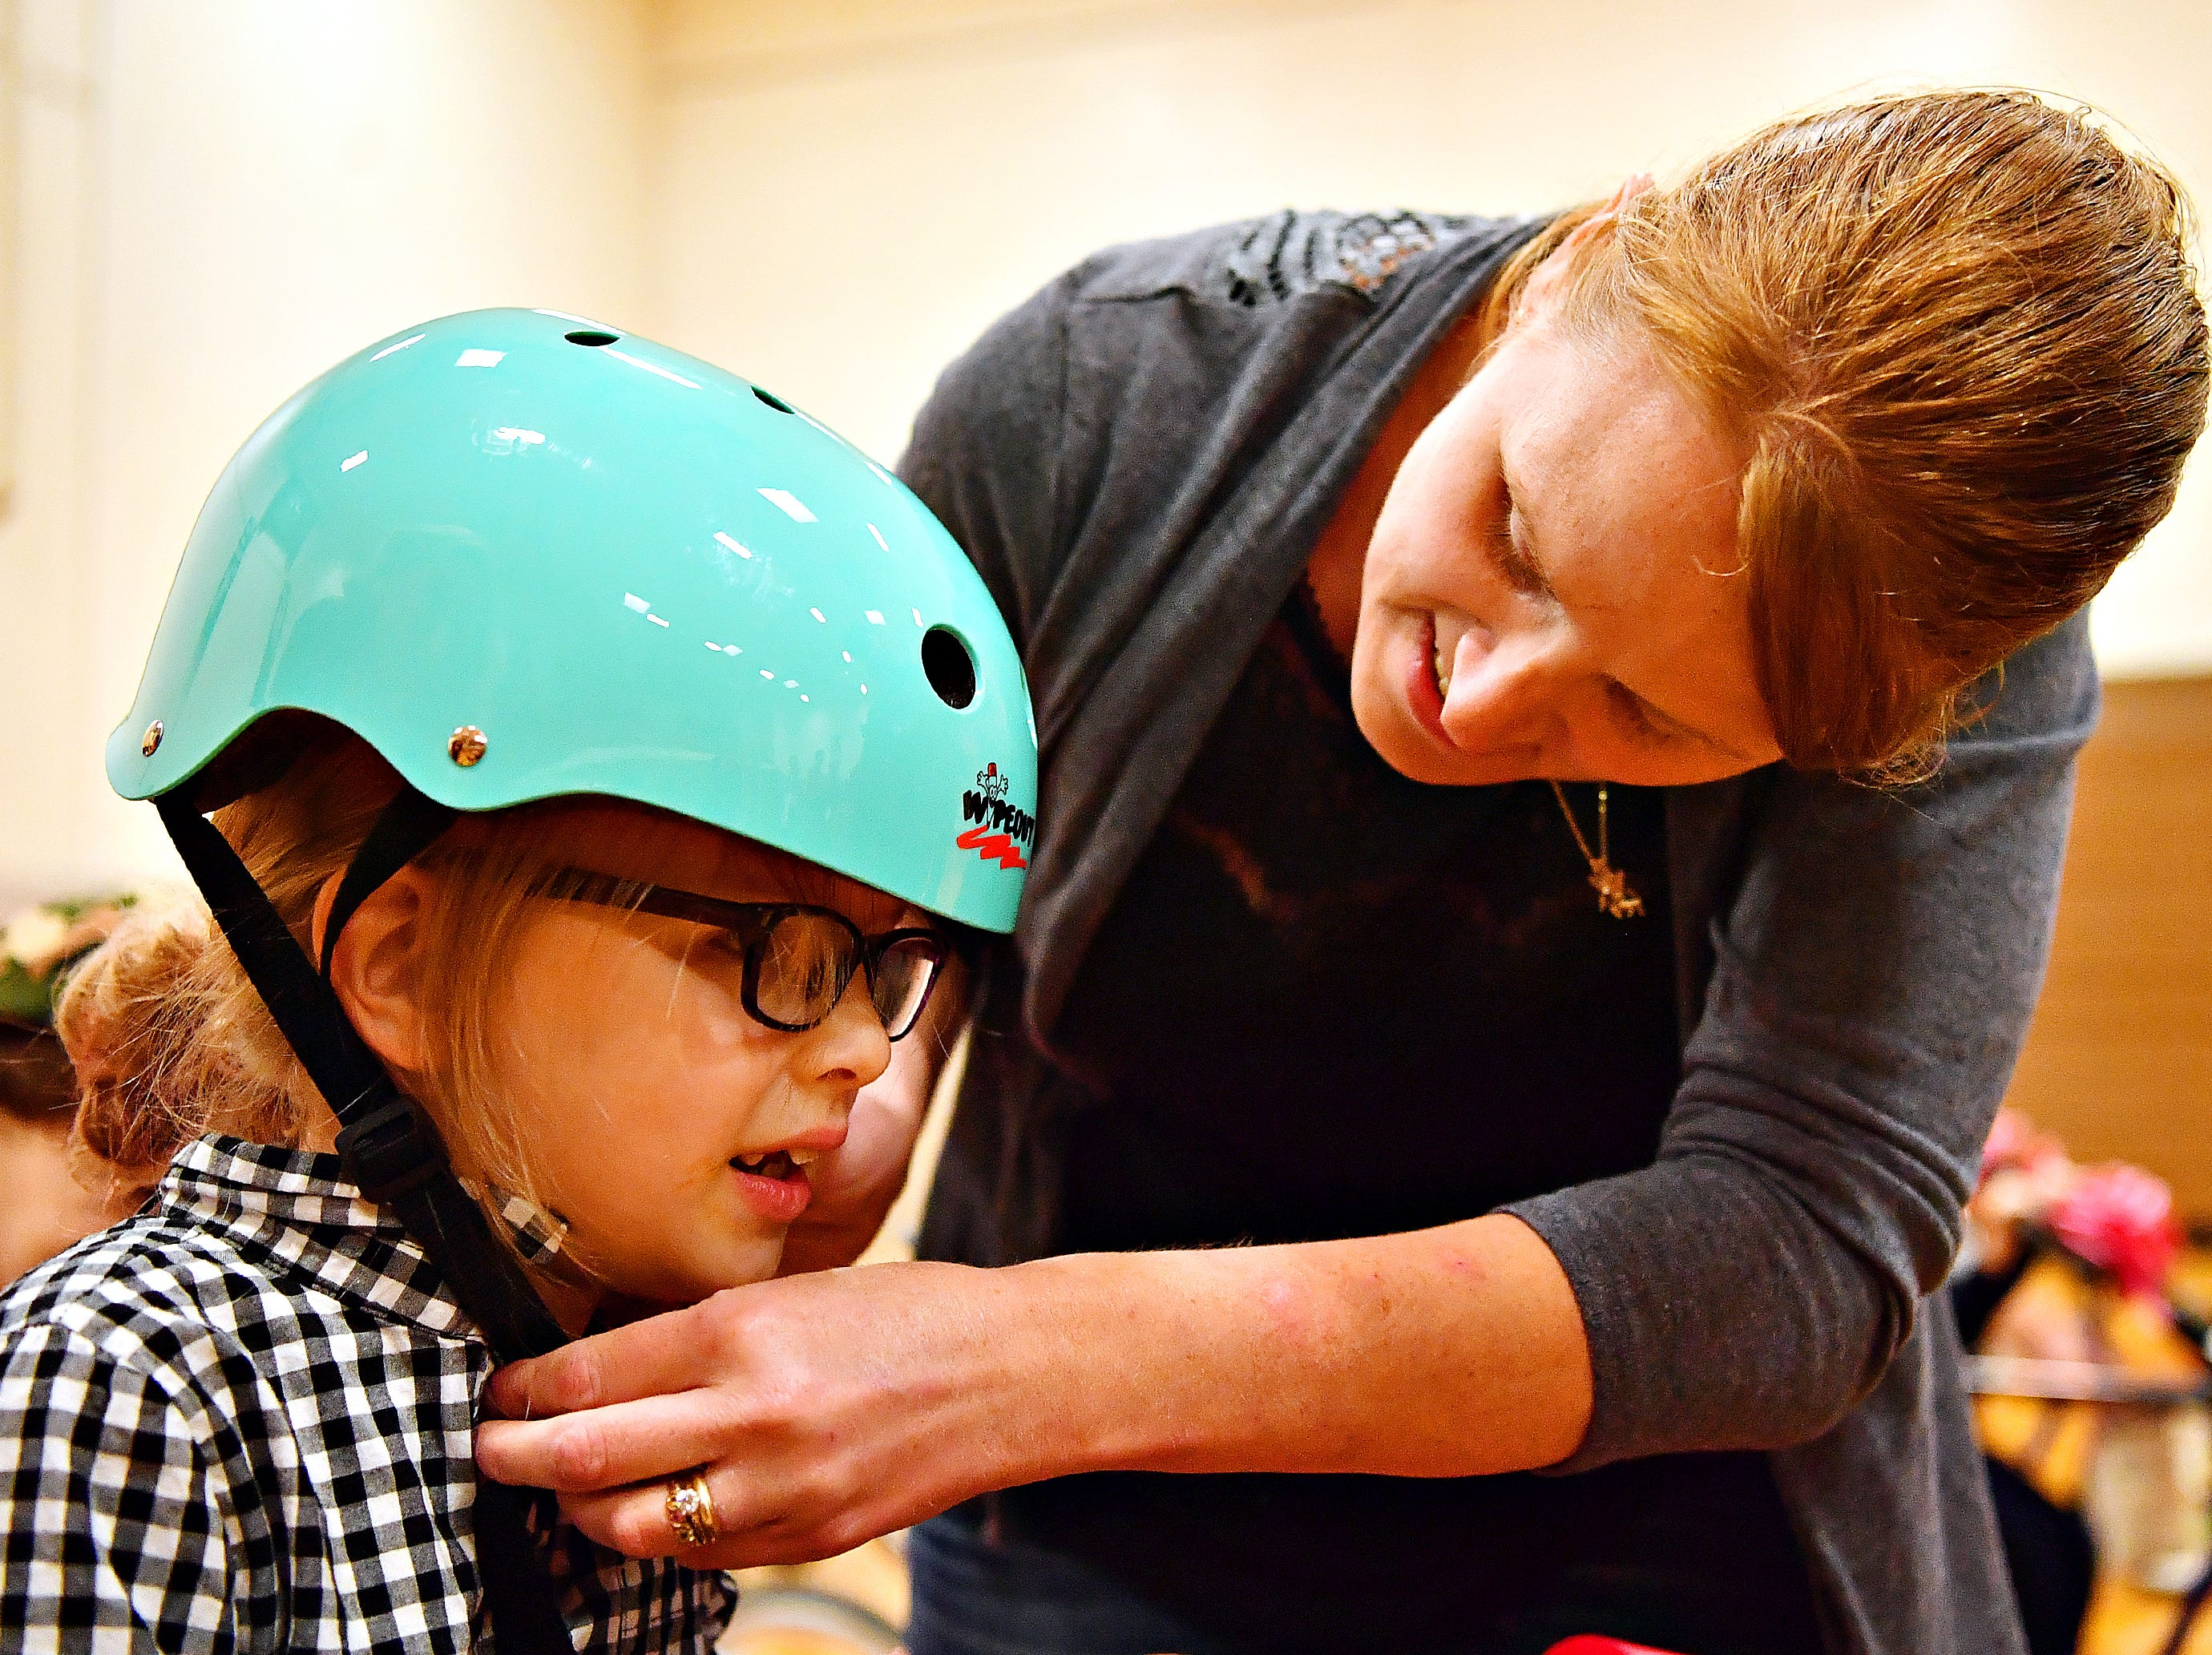 Buffy Eck, right, helps her daughter Sophia Eck, 8, both of Wrightsville, secures Sophia's helmet as Variety, the Children's Charity, based in Pittsburg, presents adaptable equipment and communication devices to children with disabilities at York Learning Center in North York, Tuesday, May 14, 2019. Dawn J. Sagert photo